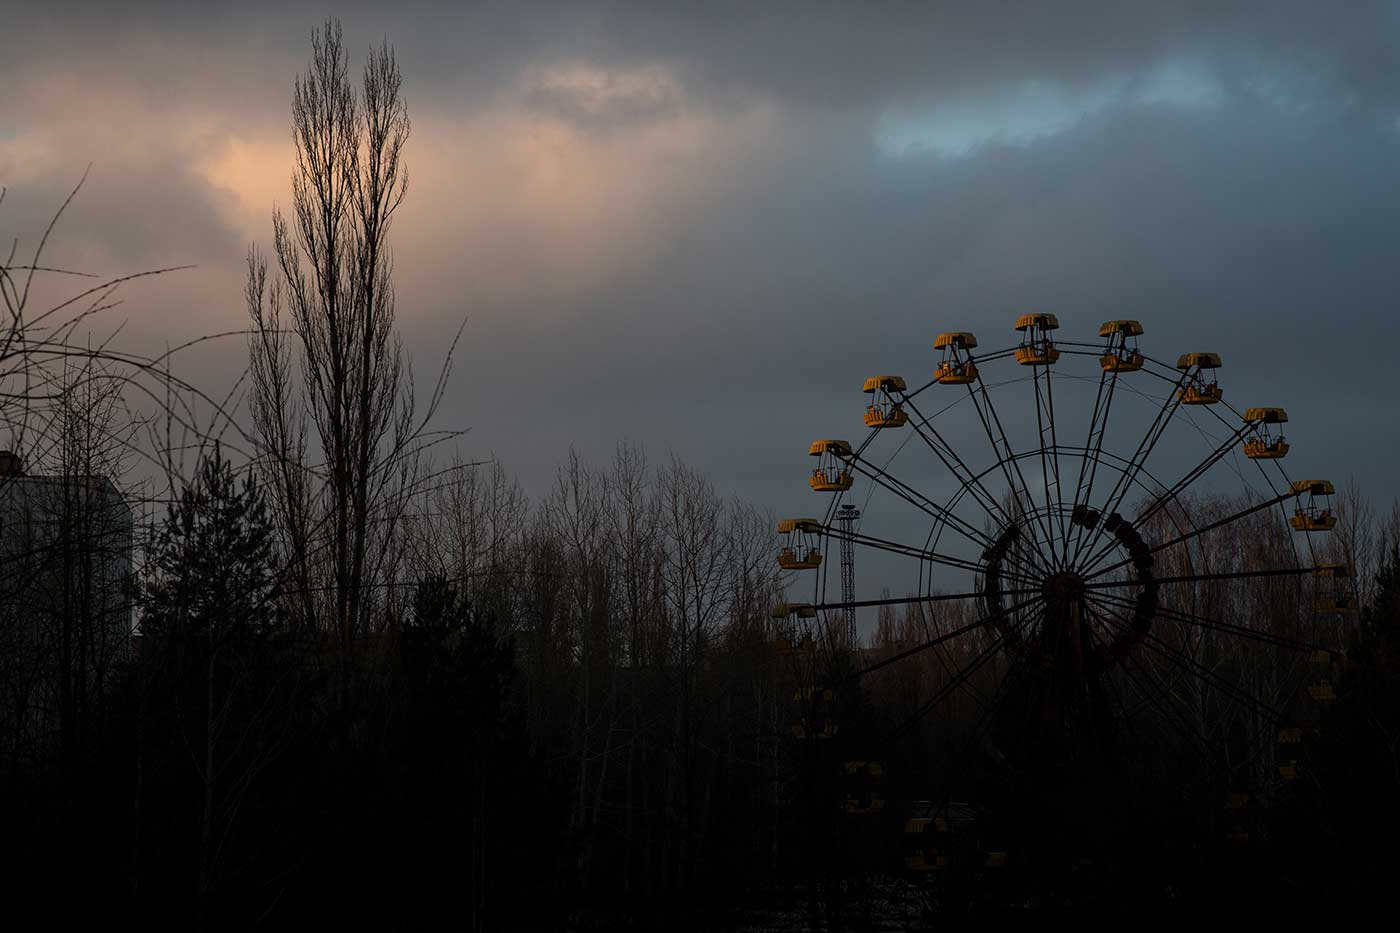 The Ferris wheel in Pripyat, at dusk.